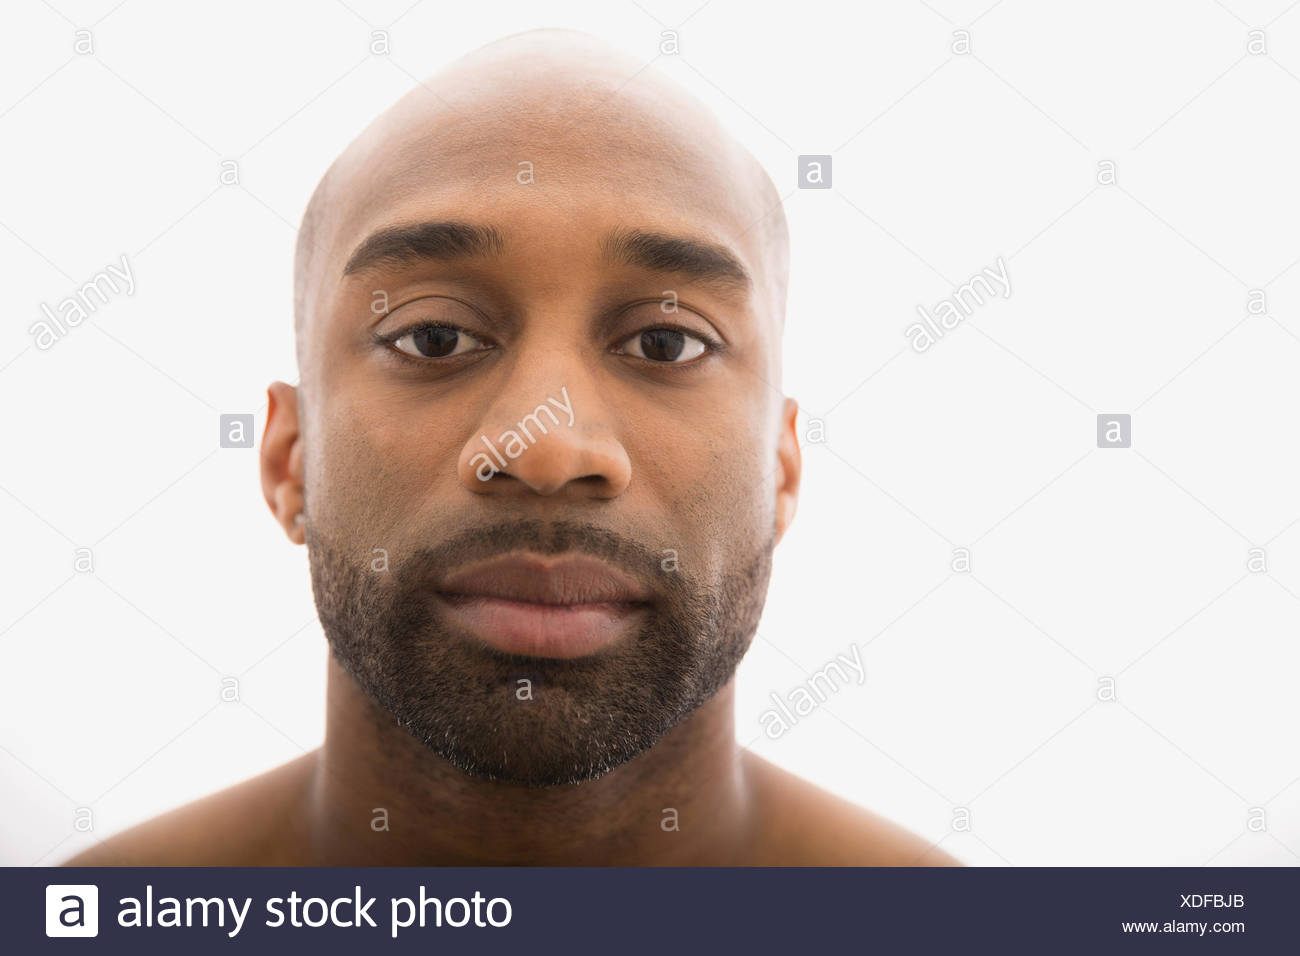 Close up portrait of serious man with beard - Stock Image